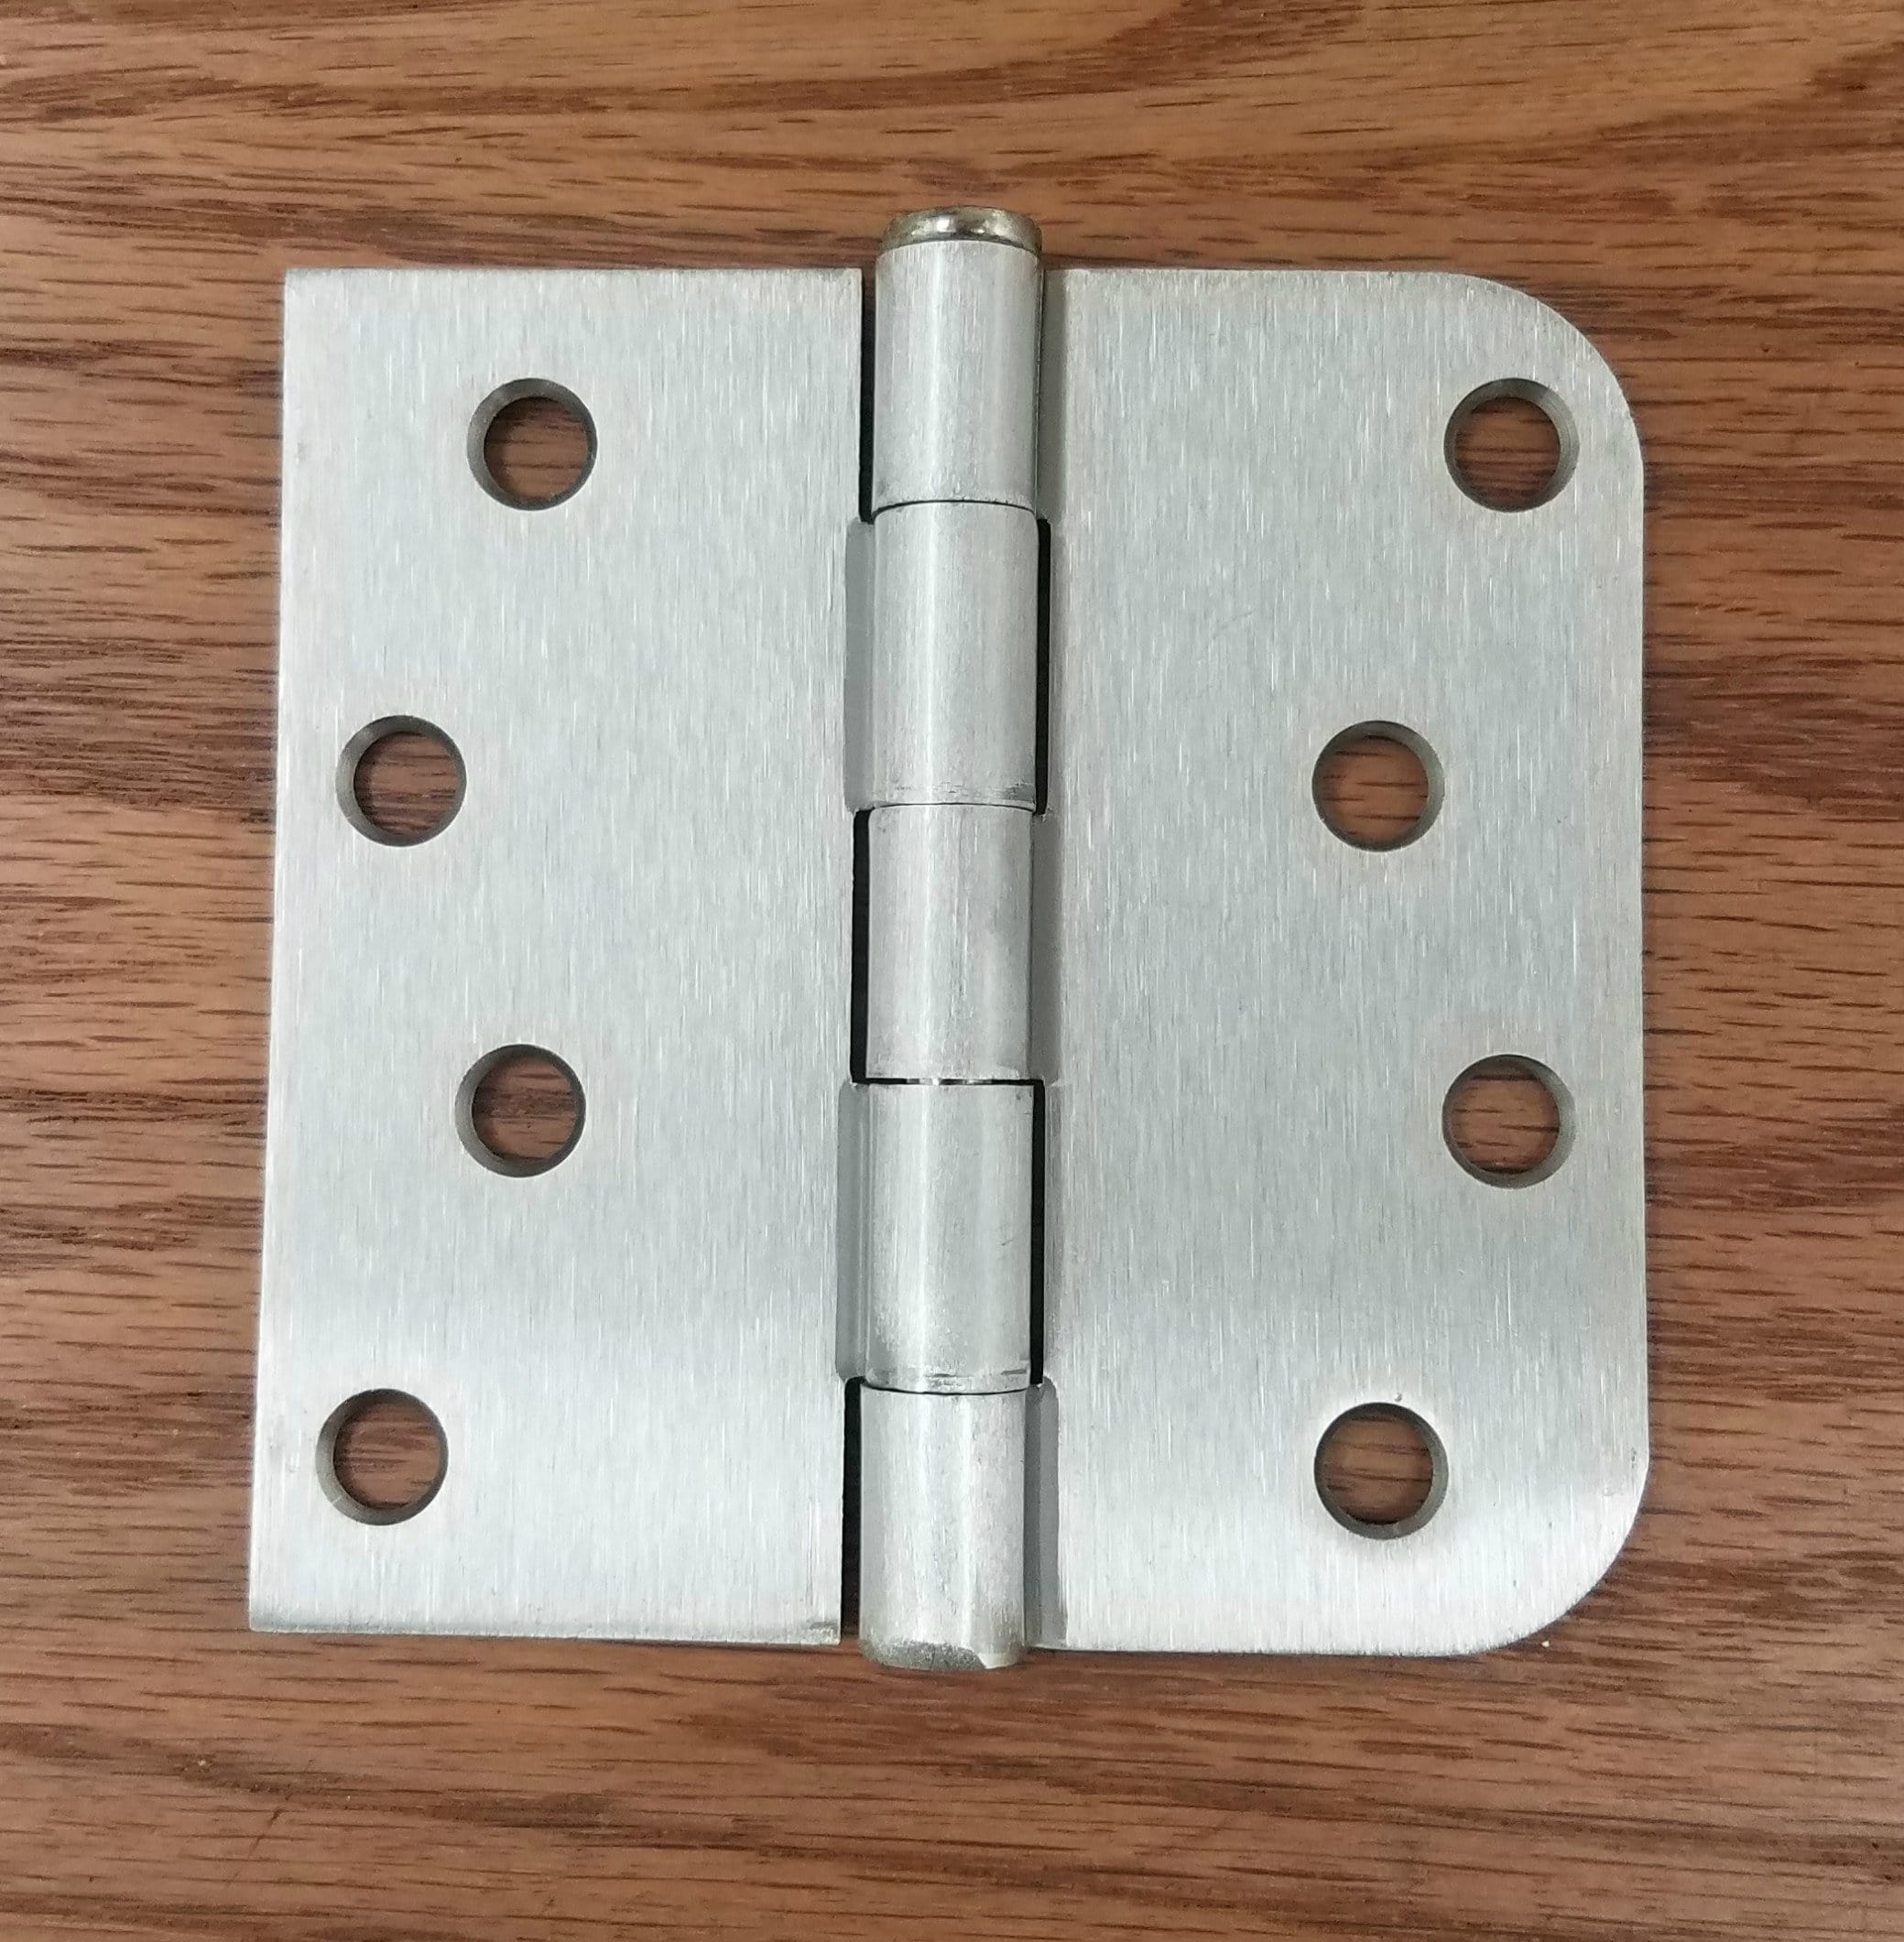 Residential Satin Nickel Door Hinges - 4 inch with 5/8 inch Square - Plain Bearing - 2 Pack